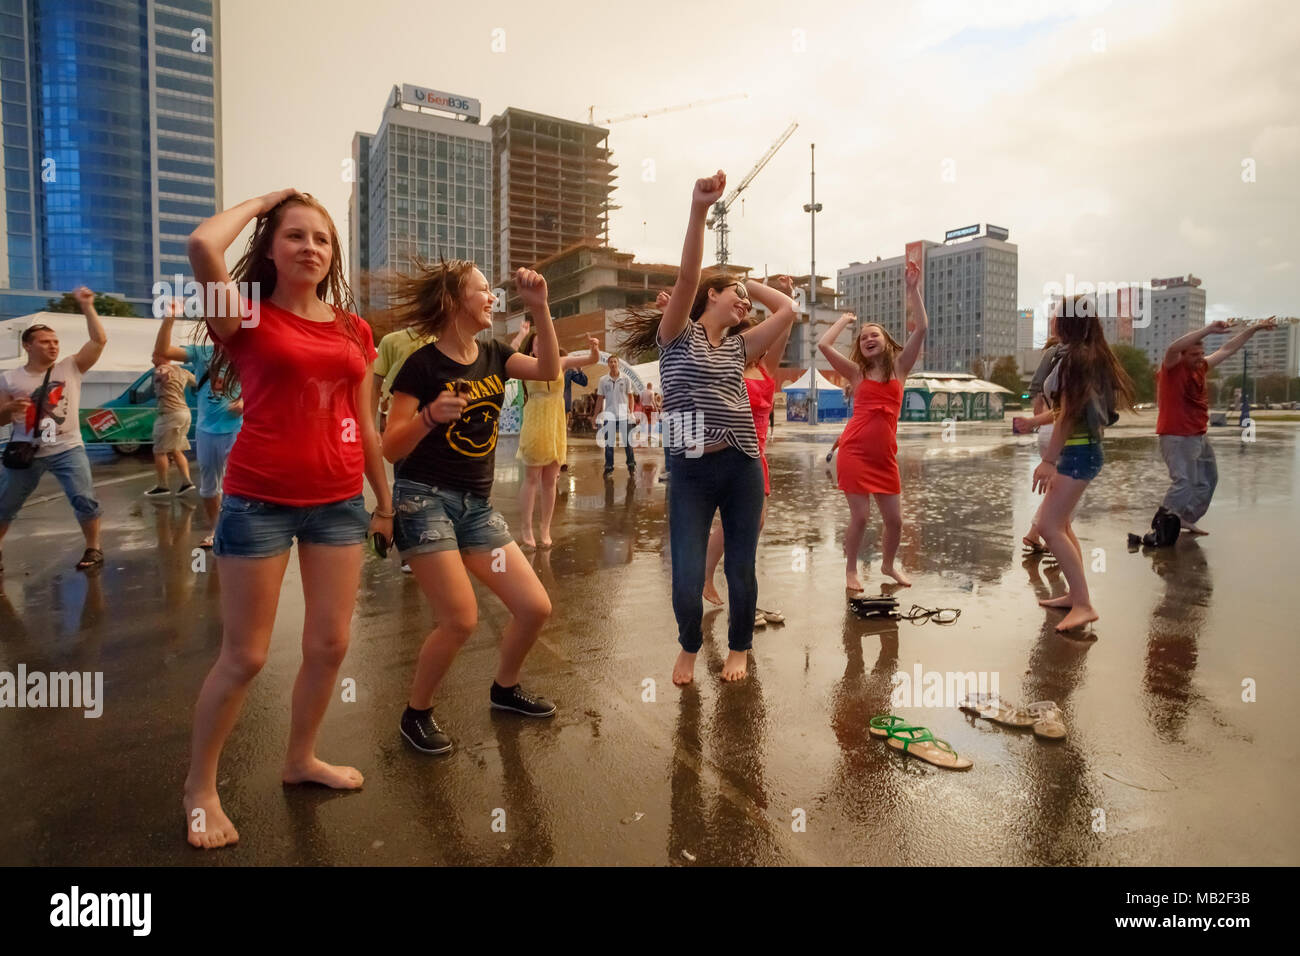 https://c8.alamy.com/comp/MB2F3B/minsk-belarus-may-9-2014-young-people-dancing-during-rain-in-front-of-the-palace-of-sports-MB2F3B.jpg